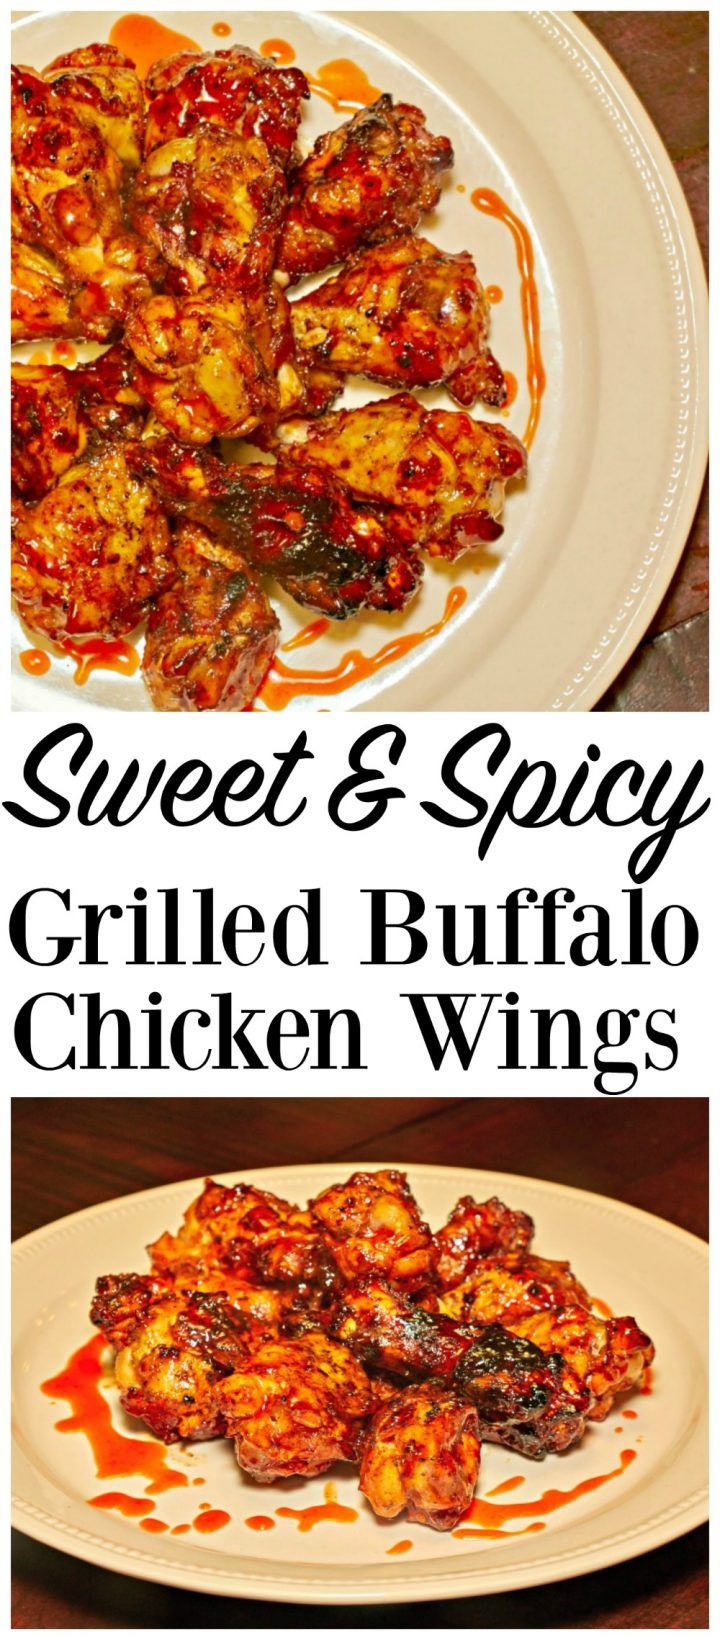 Sweet & Spicy Grilled Buffalo Chicken Wings Recipe | Divine Lifestyle ~ sauce dip healthy flavor dinner meal barbeque appetizer